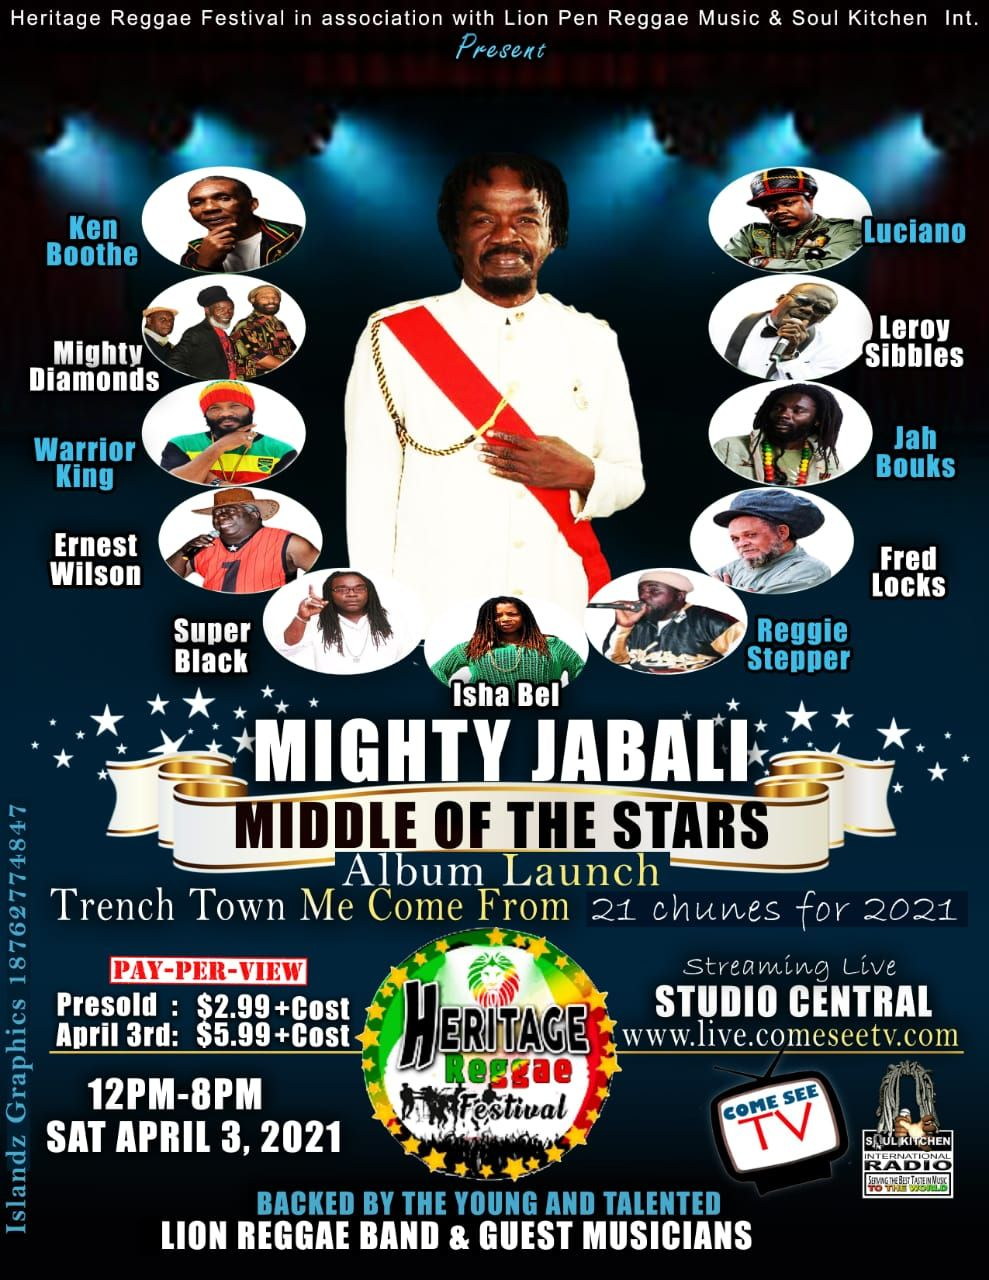 Heritage Reggae Festival presents Mighty Jabali: Middle of the Stars - April 3rd, 2021